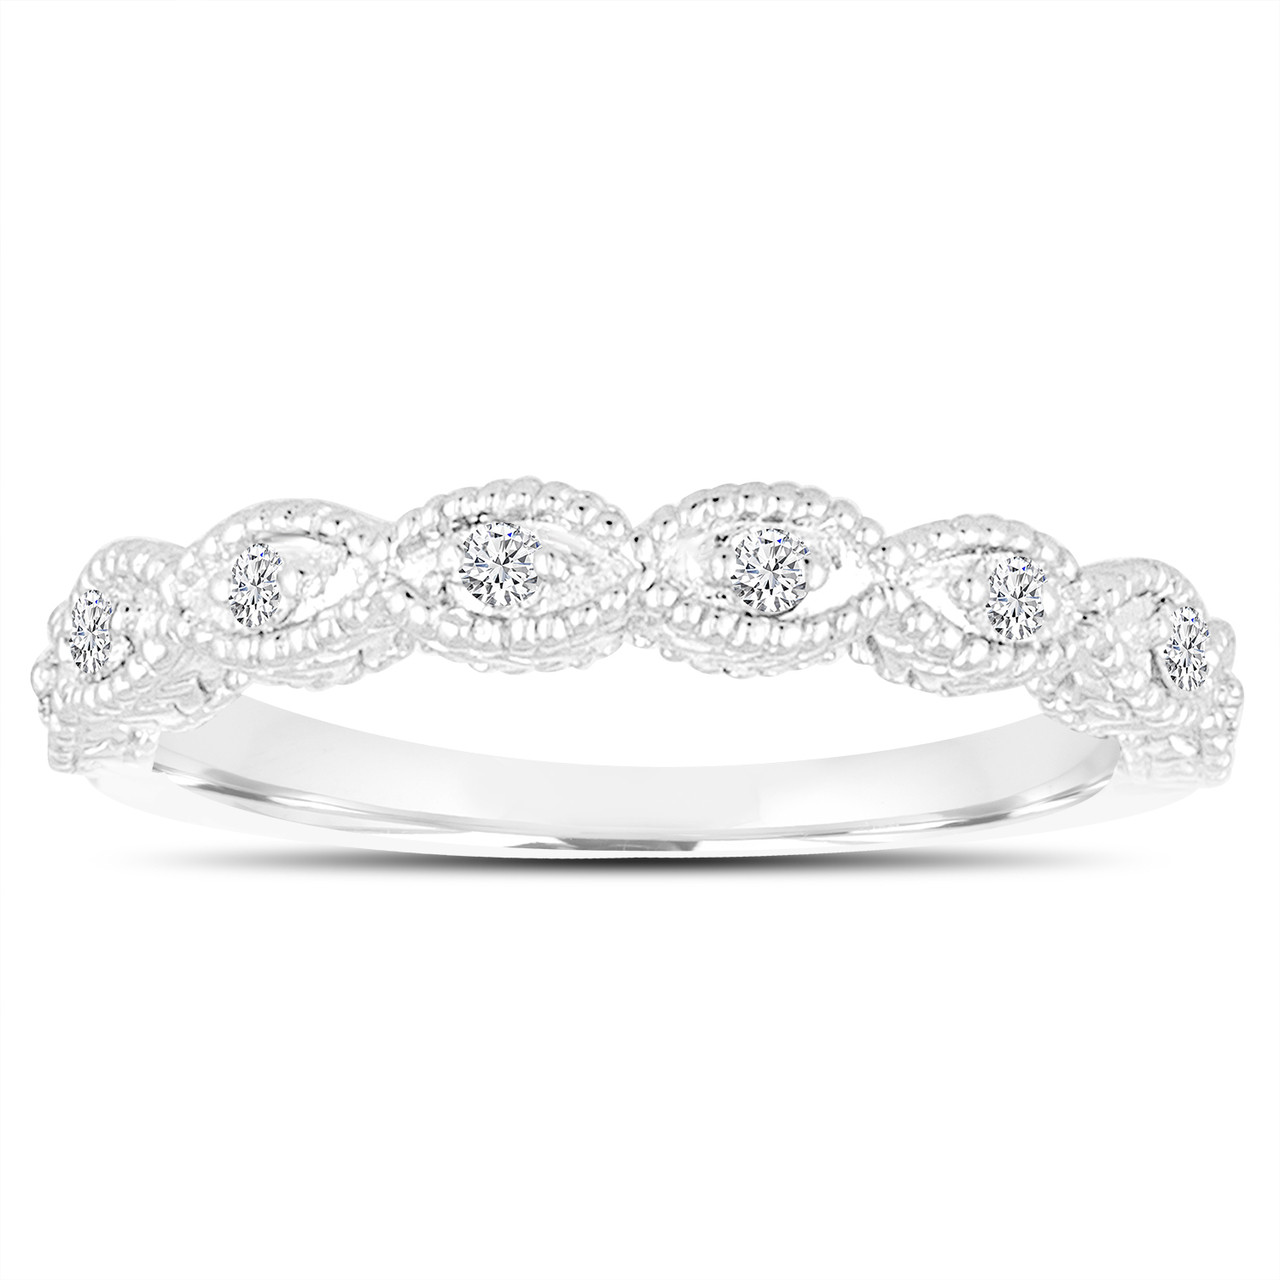 950 Platinum Wedding & Anniversary Diamonds Band 0.11